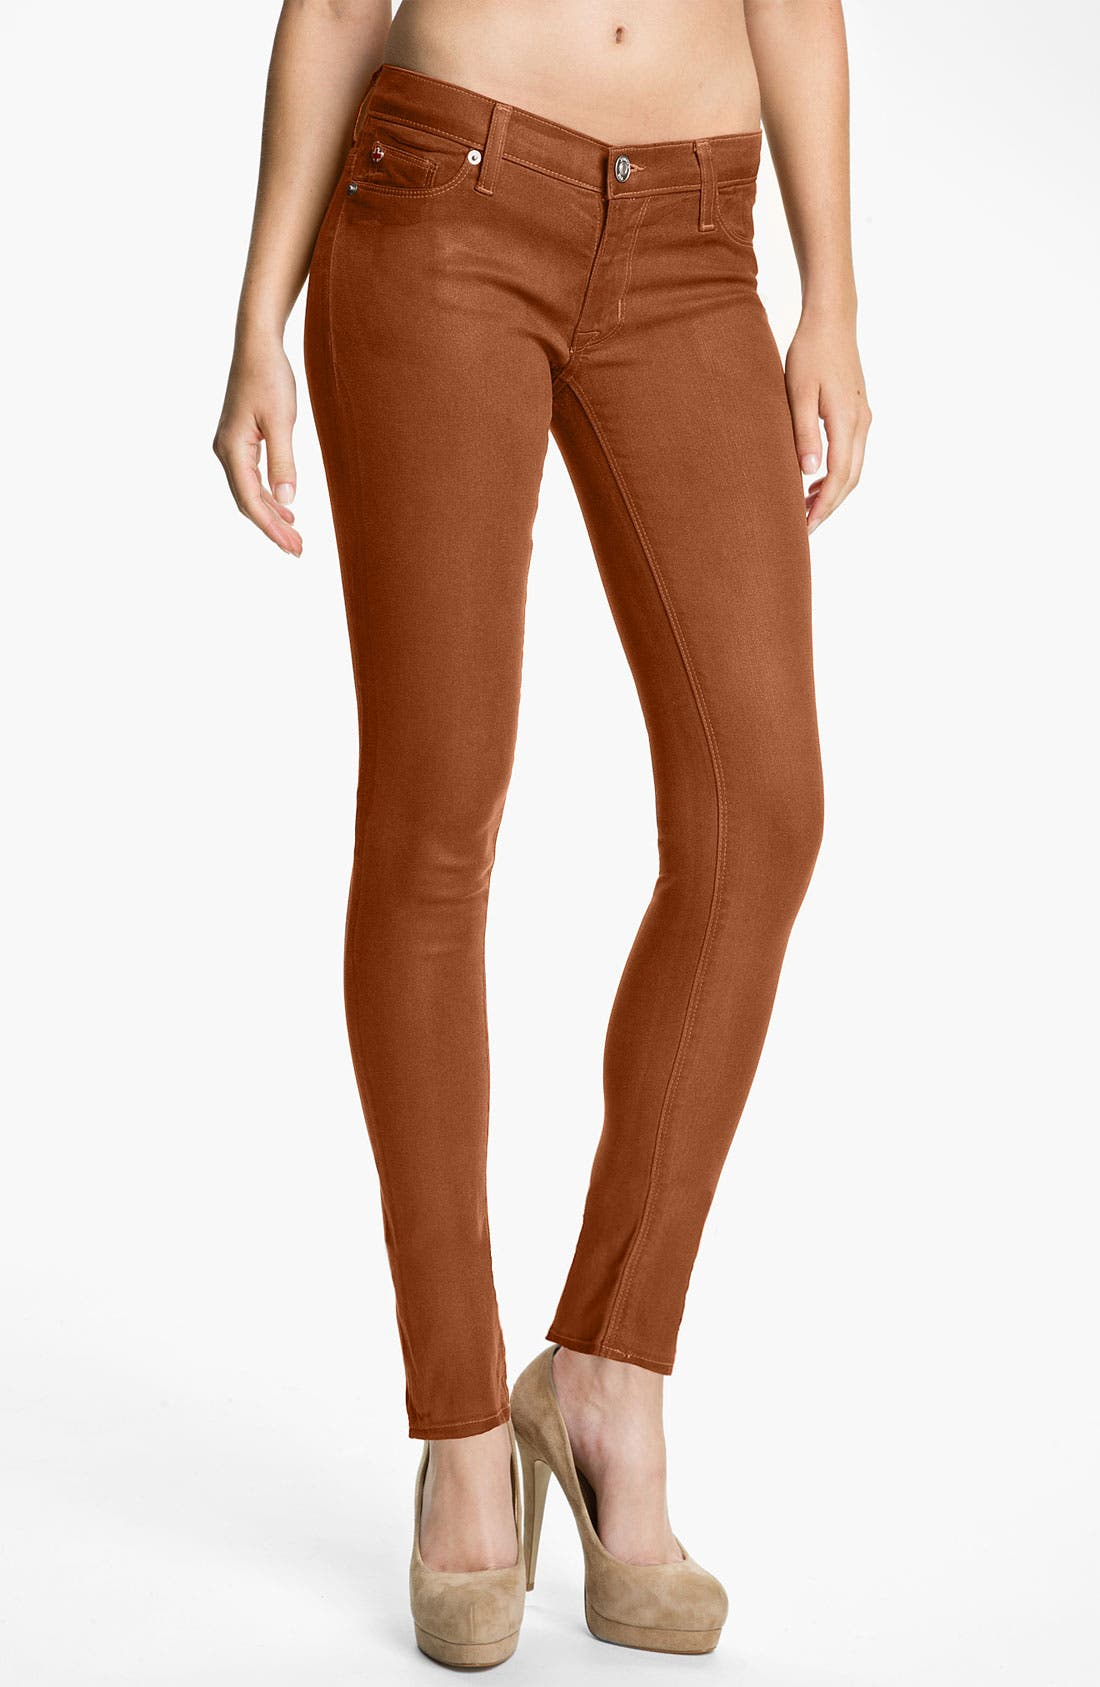 'Krista' Super Skinny Jeans,                             Main thumbnail 1, color,                             224